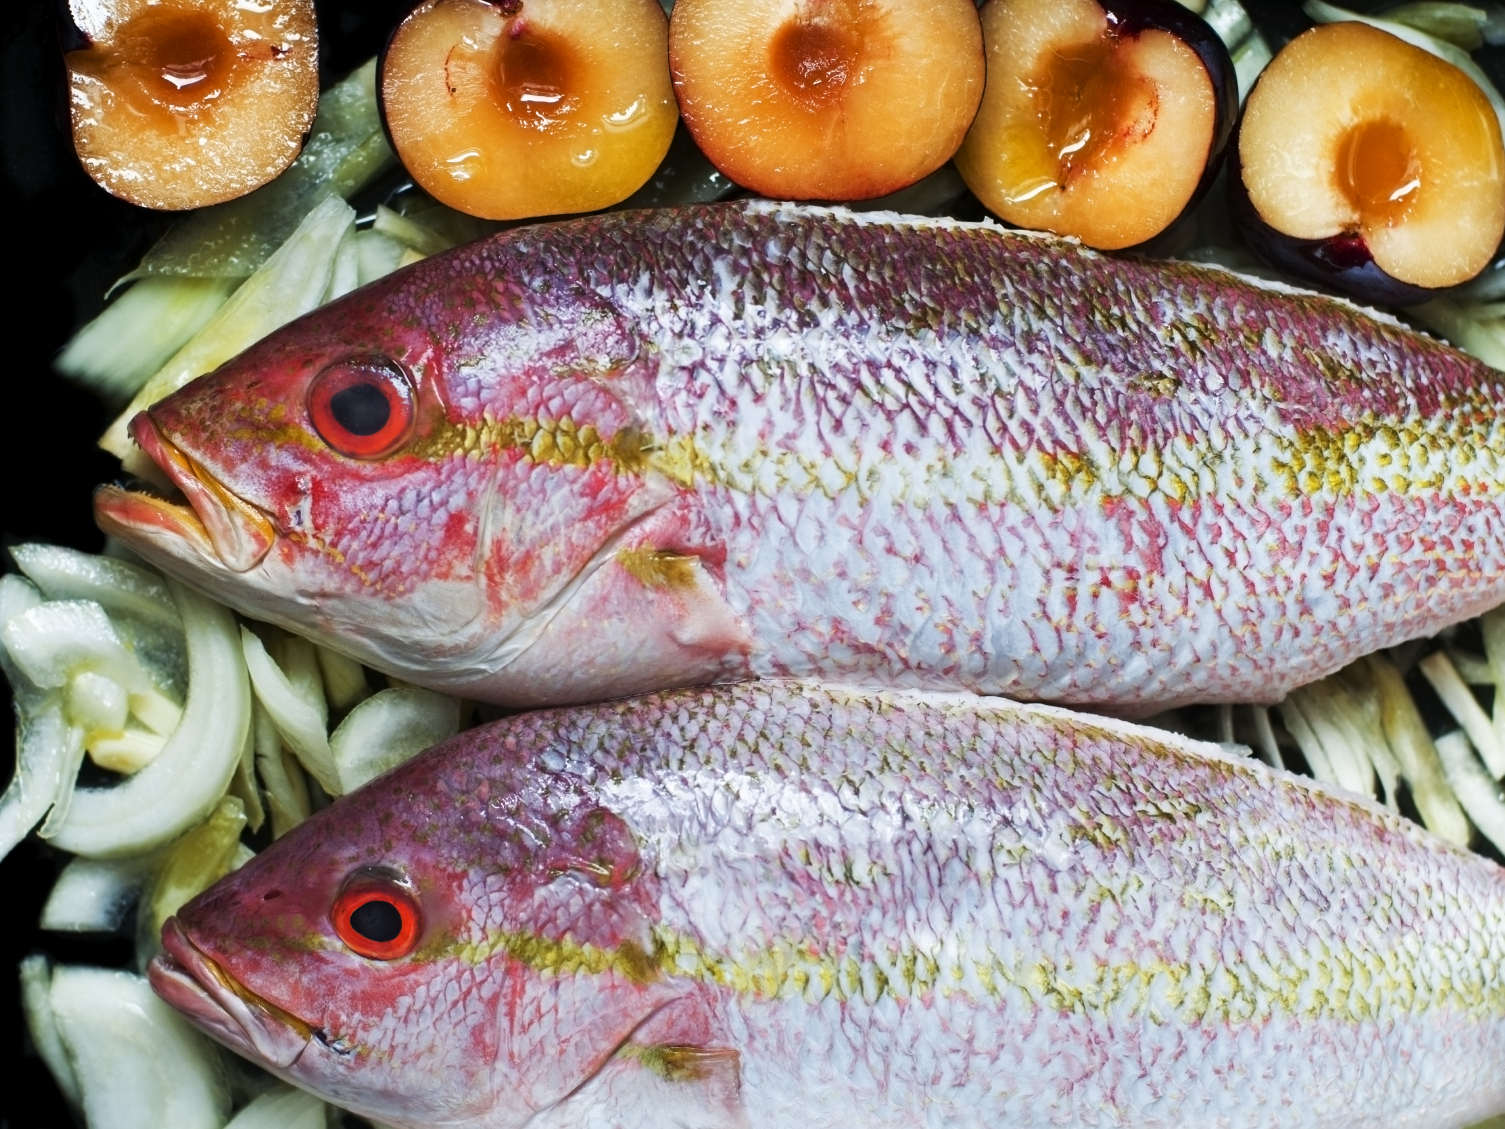 sexually transmitted food poisoning a fish toxin could be